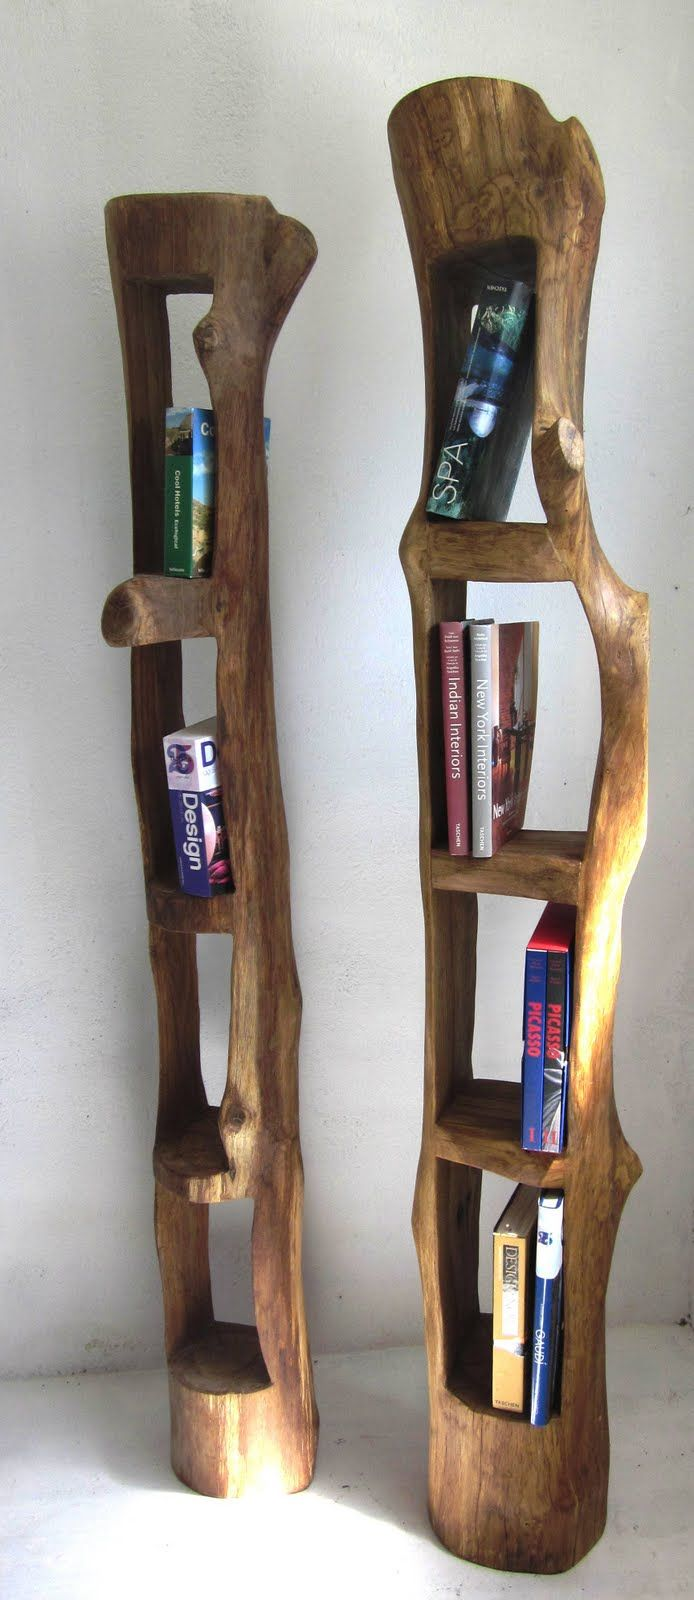 so cool for a bookshelf!